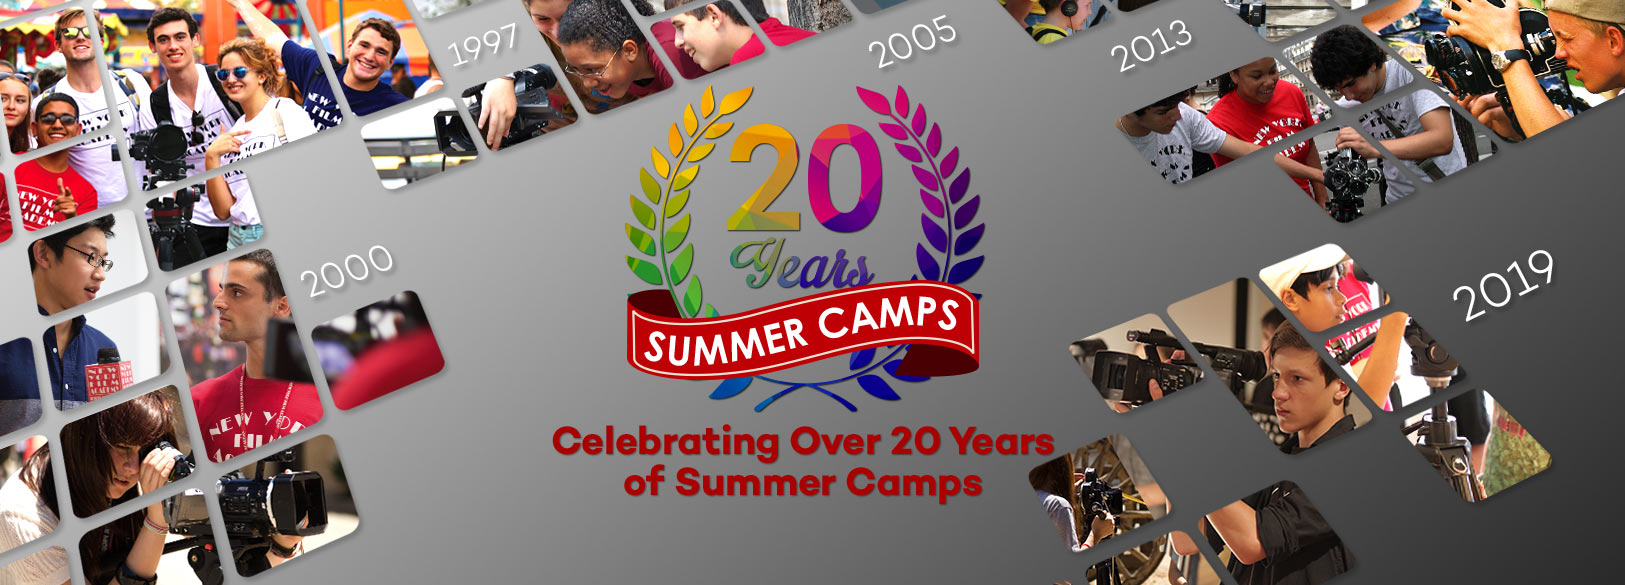 Summer Camps & Year-Round Camps for Teens & Kids | NYFA